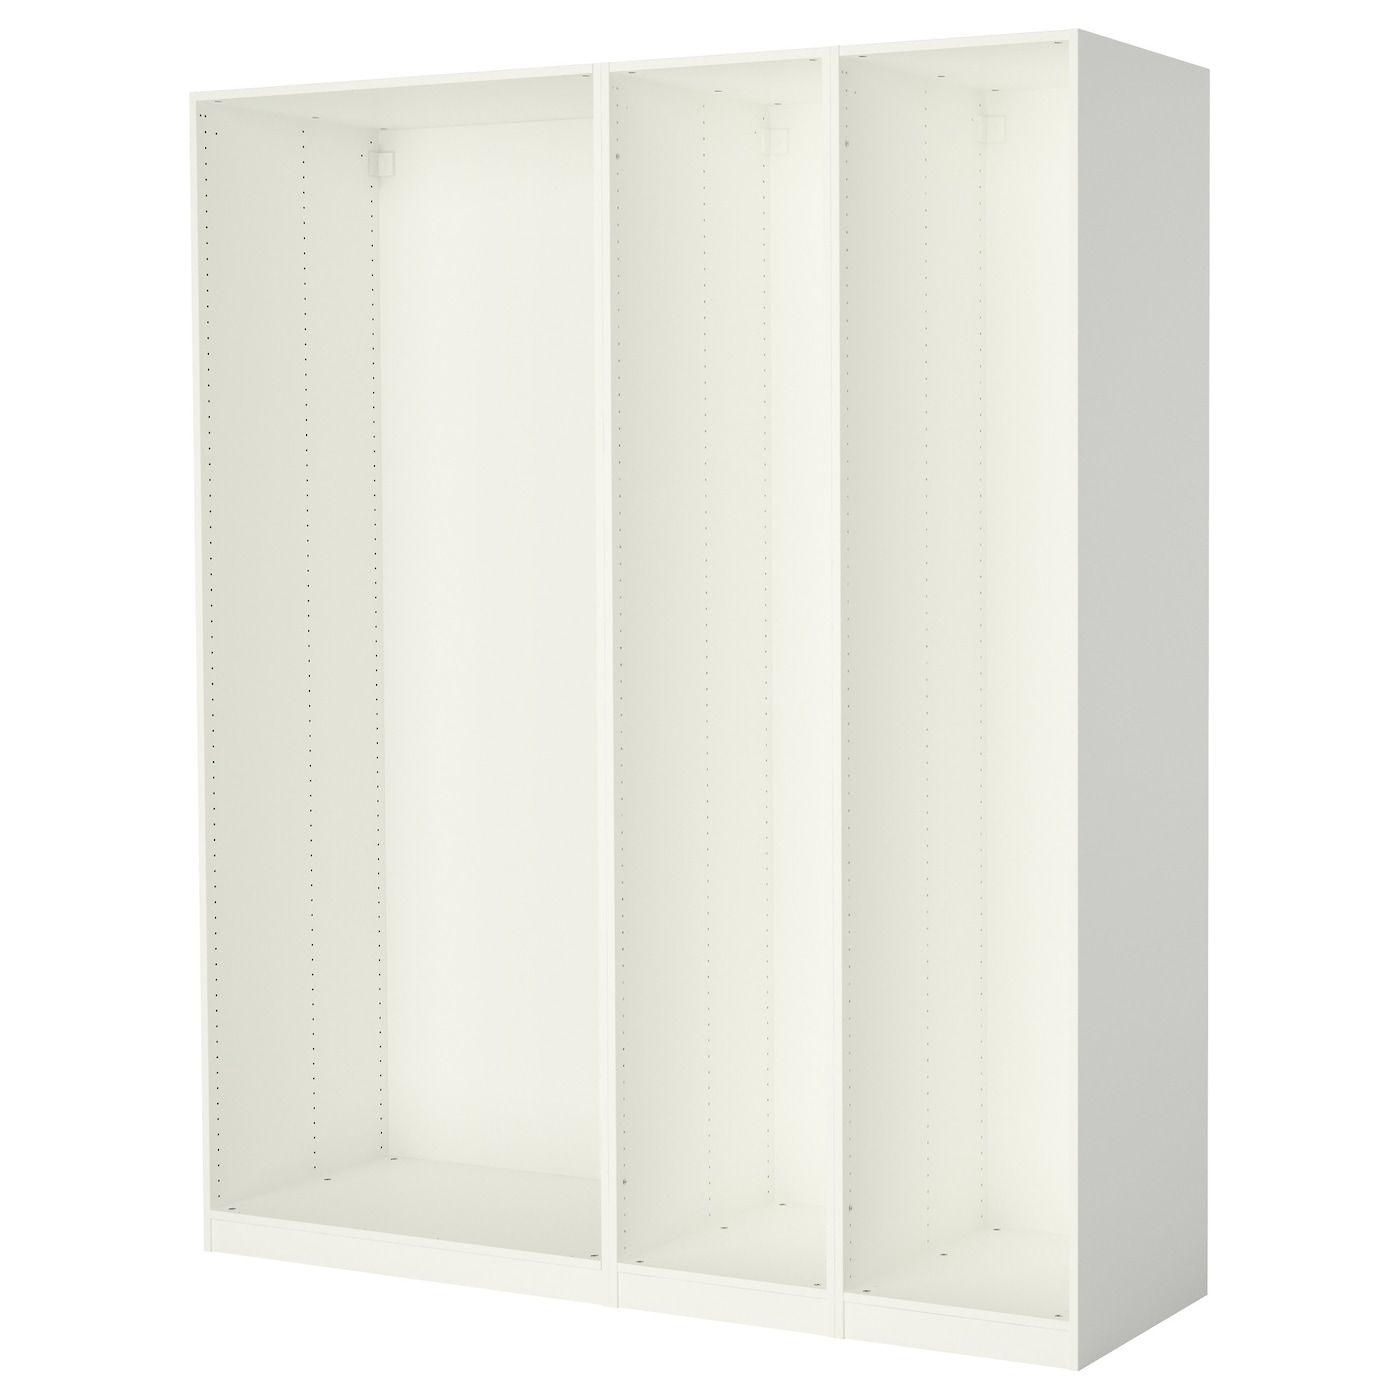 pax 3 caissons armoire blanc 200 x 58 x 236 cm ikea. Black Bedroom Furniture Sets. Home Design Ideas